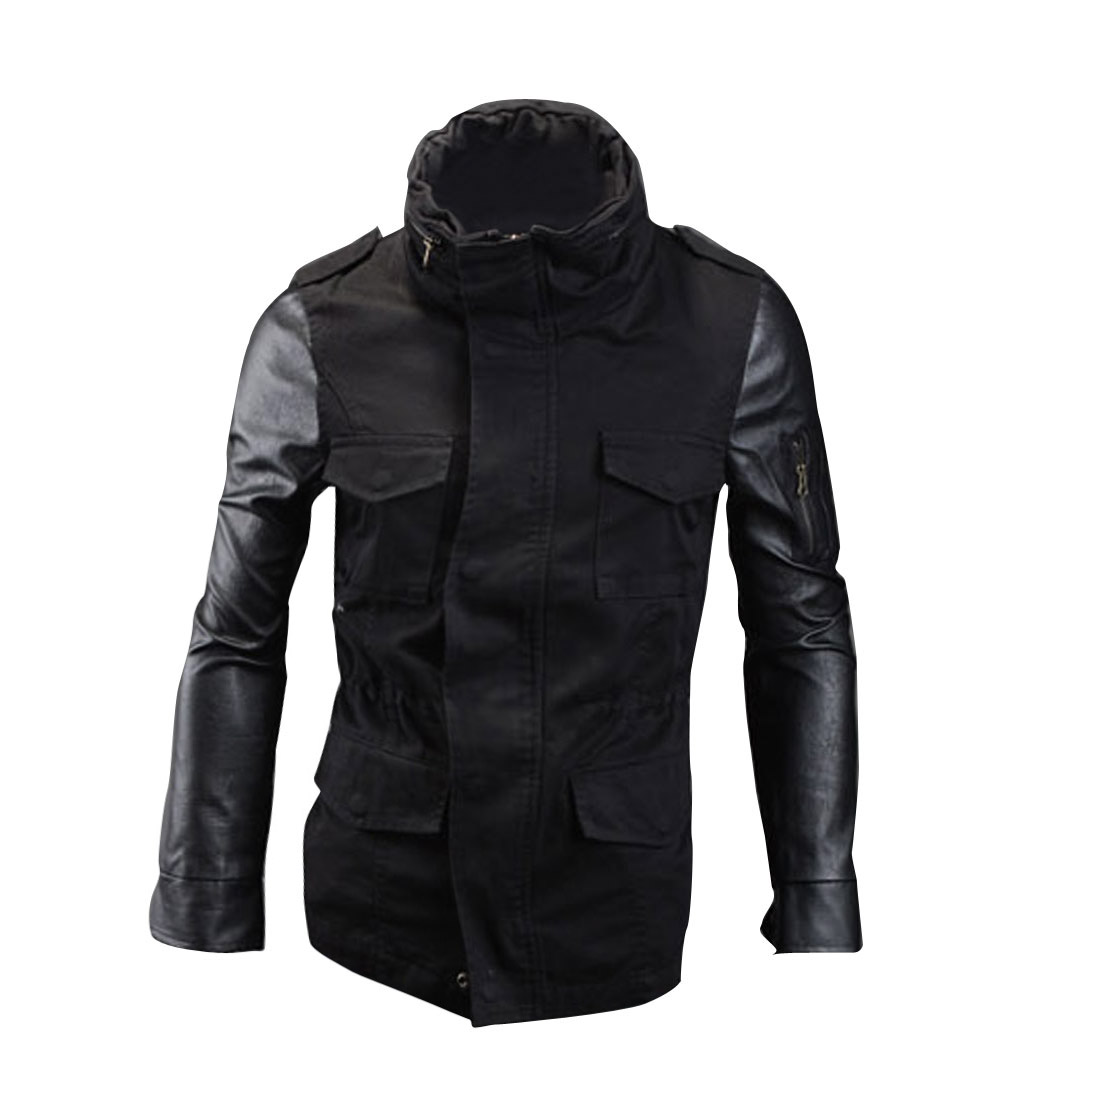 Men Stand Collar Zip Closure Panel Jacket Black M